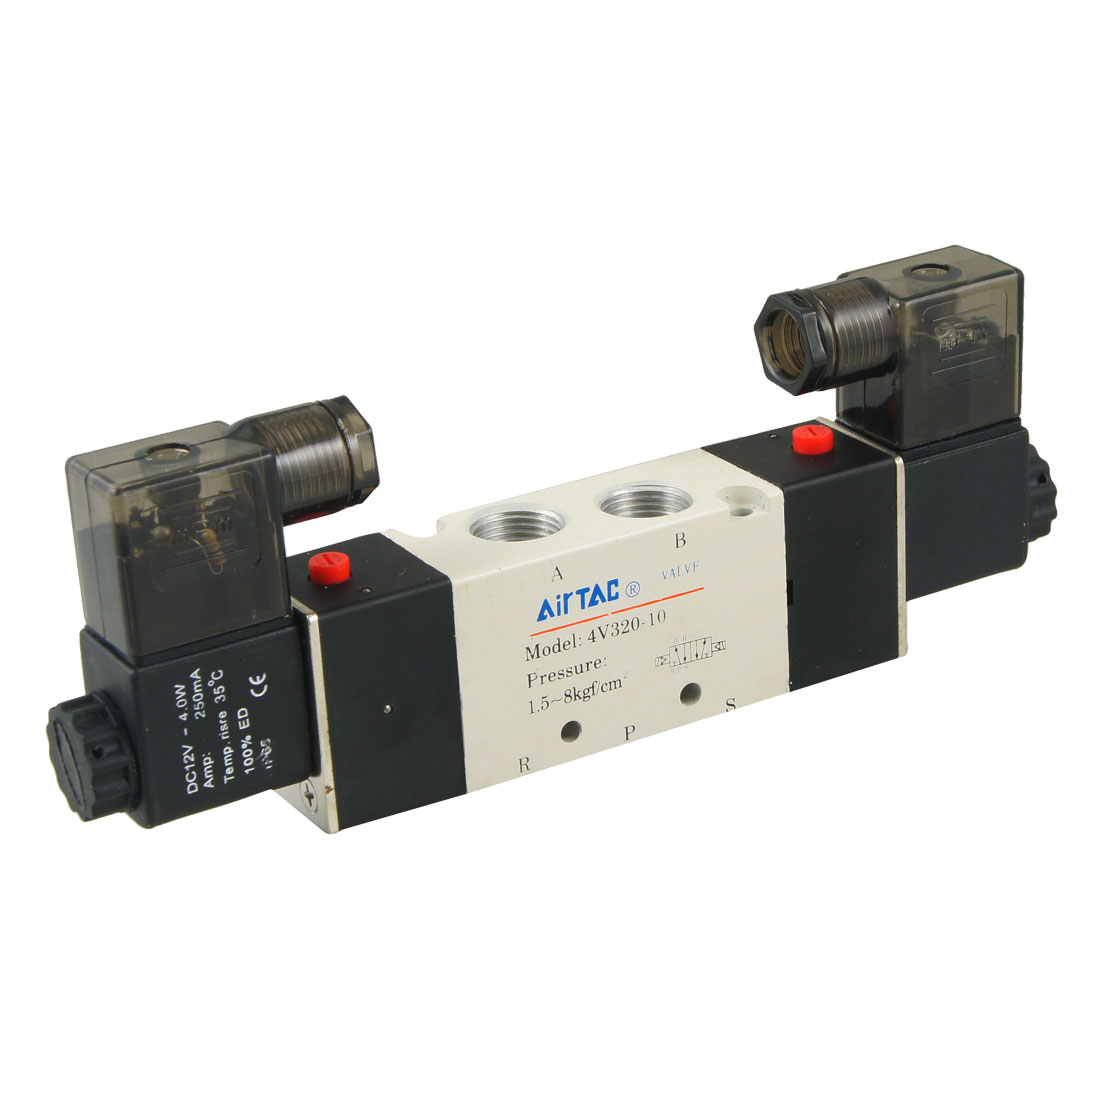 4V320-10 DC 12V 2 Positions 5 Ways Air Control Solenoid Valve